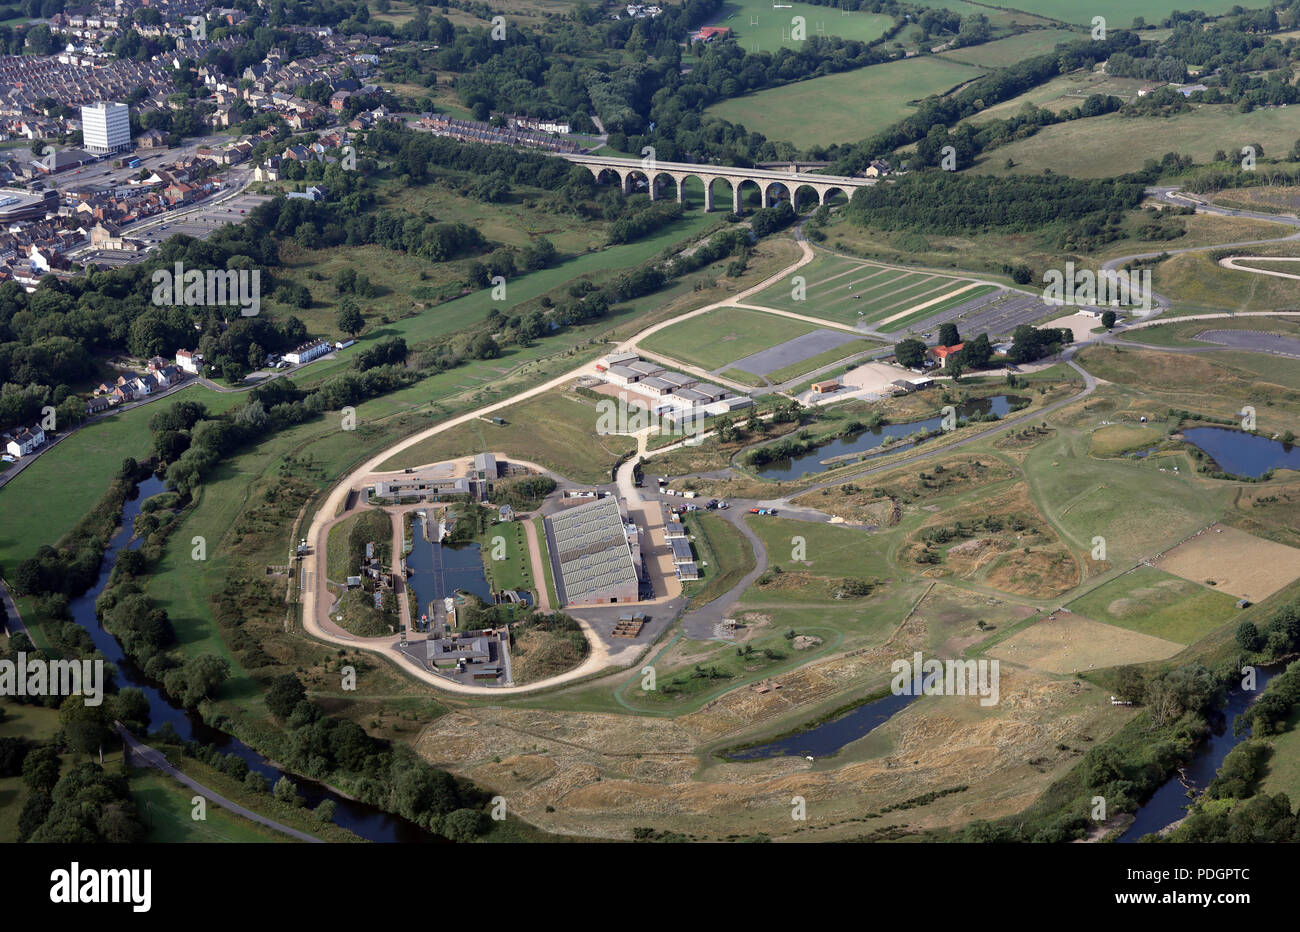 aerial view of the Kynren outdoor spectacular site at Bishop Auckland, County Durham - Stock Image